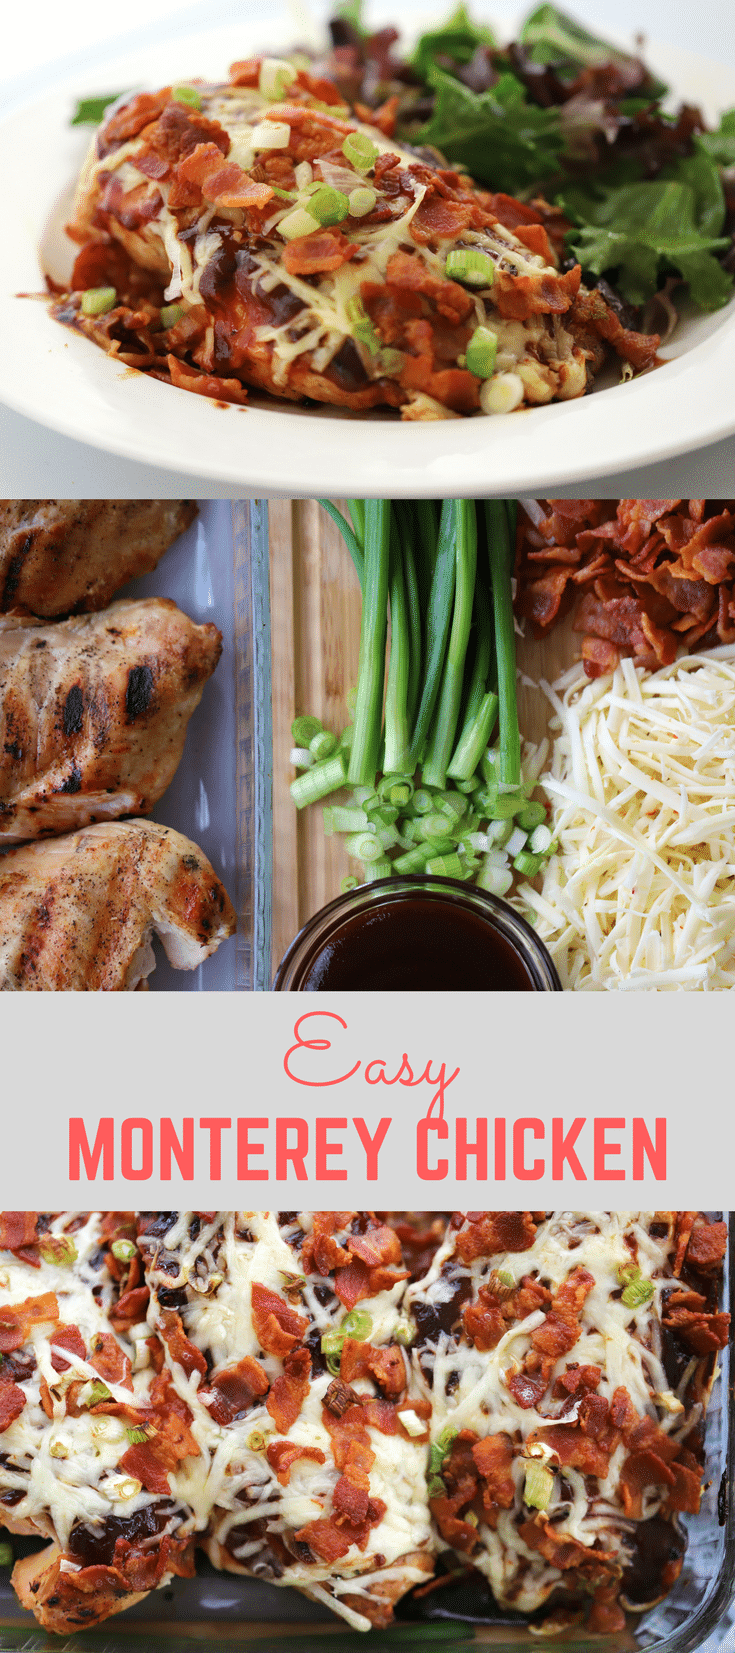 Monterey Chicken is a family favorite. It's easy enough for a weekday meal and fancy enough for company. thecarefreekitchen.com